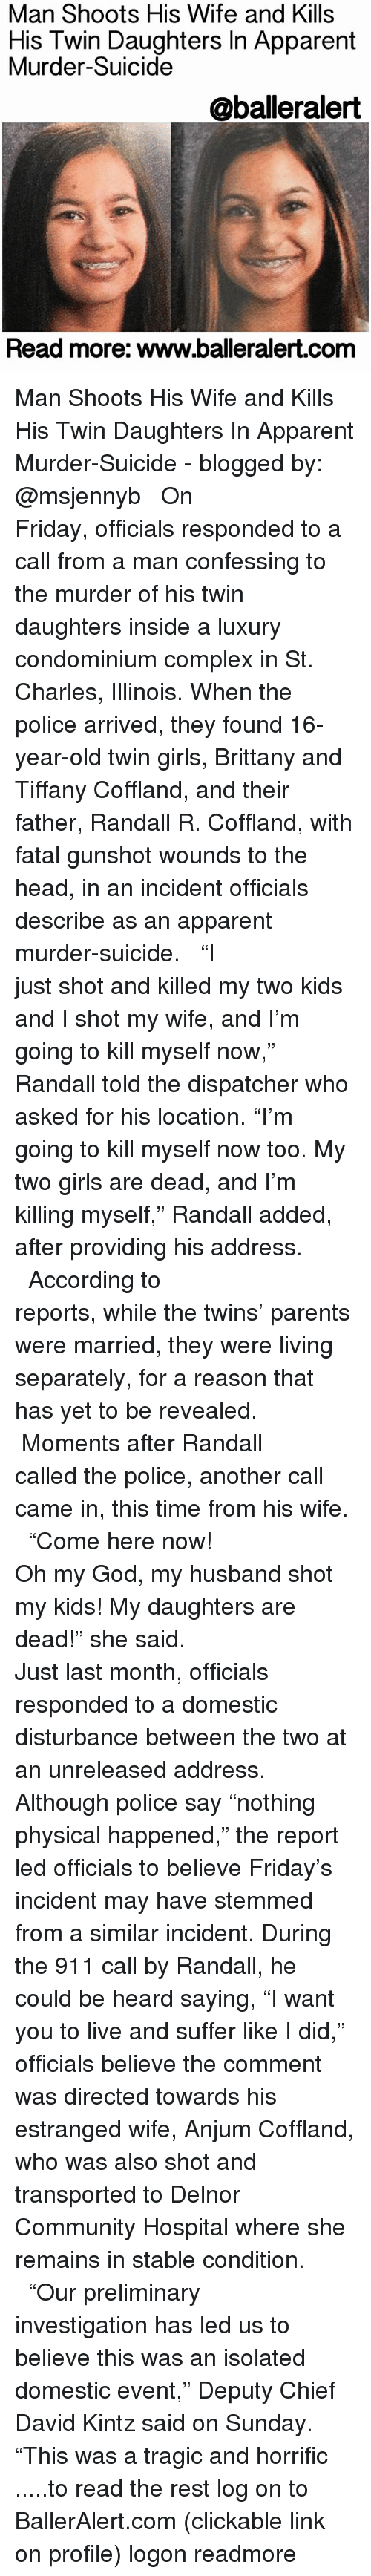 "Memes, 🤖, and Led: Man Shoots His Wife and Kills  His His Twin Daughters In Apparent  Murder-Suicide  @balleralert  Read more: www.balleralert.com Man Shoots His Wife and Kills His Twin Daughters In Apparent Murder-Suicide - blogged by: @msjennyb ⠀⠀⠀⠀⠀⠀⠀⠀⠀ ⠀⠀⠀⠀⠀⠀⠀⠀⠀ On Friday, officials responded to a call from a man confessing to the murder of his twin daughters inside a luxury condominium complex in St. Charles, Illinois. When the police arrived, they found 16-year-old twin girls, Brittany and Tiffany Coffland, and their father, Randall R. Coffland, with fatal gunshot wounds to the head, in an incident officials describe as an apparent murder-suicide. ⠀⠀⠀⠀⠀⠀⠀⠀⠀ ⠀⠀⠀⠀⠀⠀⠀⠀⠀ ""I just shot and killed my two kids and I shot my wife, and I'm going to kill myself now,"" Randall told the dispatcher who asked for his location. ""I'm going to kill myself now too. My two girls are dead, and I'm killing myself,"" Randall added, after providing his address. ⠀⠀⠀⠀⠀⠀⠀⠀⠀ ⠀⠀⠀⠀⠀⠀⠀⠀⠀ According to reports, while the twins' parents were married, they were living separately, for a reason that has yet to be revealed. ⠀⠀⠀⠀⠀⠀⠀⠀⠀ ⠀⠀⠀⠀⠀⠀⠀⠀⠀ Moments after Randall called the police, another call came in, this time from his wife. ⠀⠀⠀⠀⠀⠀⠀⠀⠀ ⠀⠀⠀⠀⠀⠀⠀⠀⠀ ""Come here now! Oh my God, my husband shot my kids! My daughters are dead!"" she said. ⠀⠀⠀⠀⠀⠀⠀⠀⠀ ⠀⠀⠀⠀⠀⠀⠀⠀⠀ Just last month, officials responded to a domestic disturbance between the two at an unreleased address. Although police say ""nothing physical happened,"" the report led officials to believe Friday's incident may have stemmed from a similar incident. During the 911 call by Randall, he could be heard saying, ""I want you to live and suffer like I did,"" officials believe the comment was directed towards his estranged wife, Anjum Coffland, who was also shot and transported to Delnor Community Hospital where she remains in stable condition. ⠀⠀⠀⠀⠀⠀⠀⠀⠀ ⠀⠀⠀⠀⠀⠀⠀⠀⠀ ""Our preliminary investigation has led us to believe this was an isolated domestic event,"" Deputy Chief David Kintz said on Sunday. ""This was a tragic and horrific .....to read the rest log on to BallerAlert.com (clickable link on profile) logon readmore"